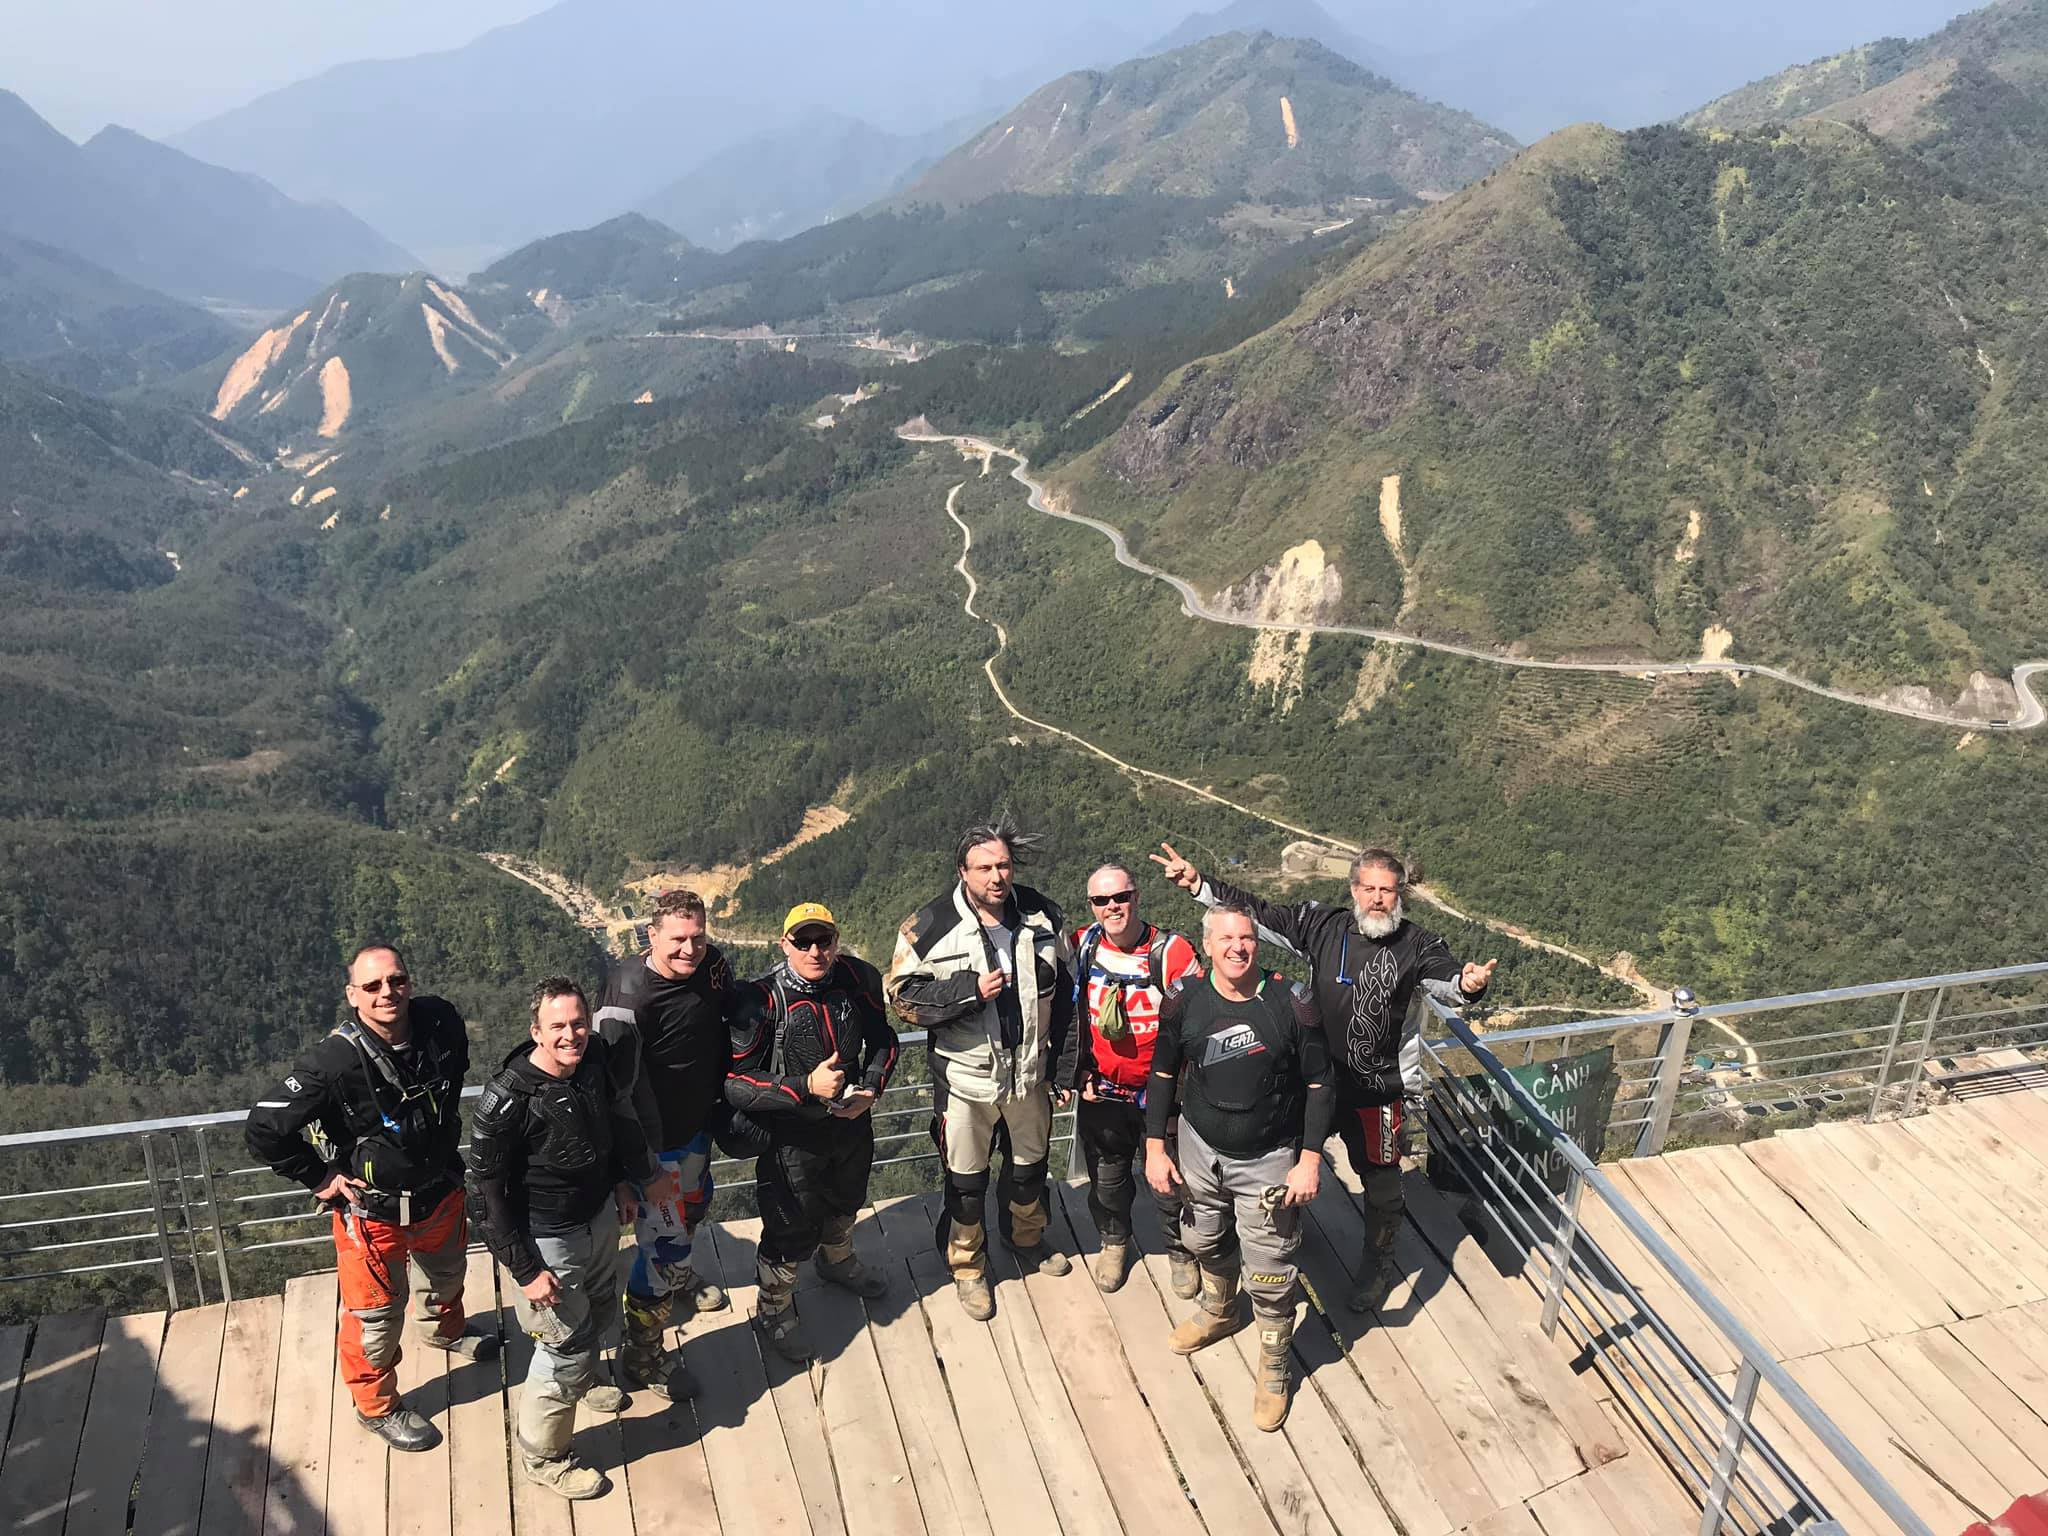 Ho Chi Minh Trail Motorcycle Tour: 12 Days Experiencing Nature